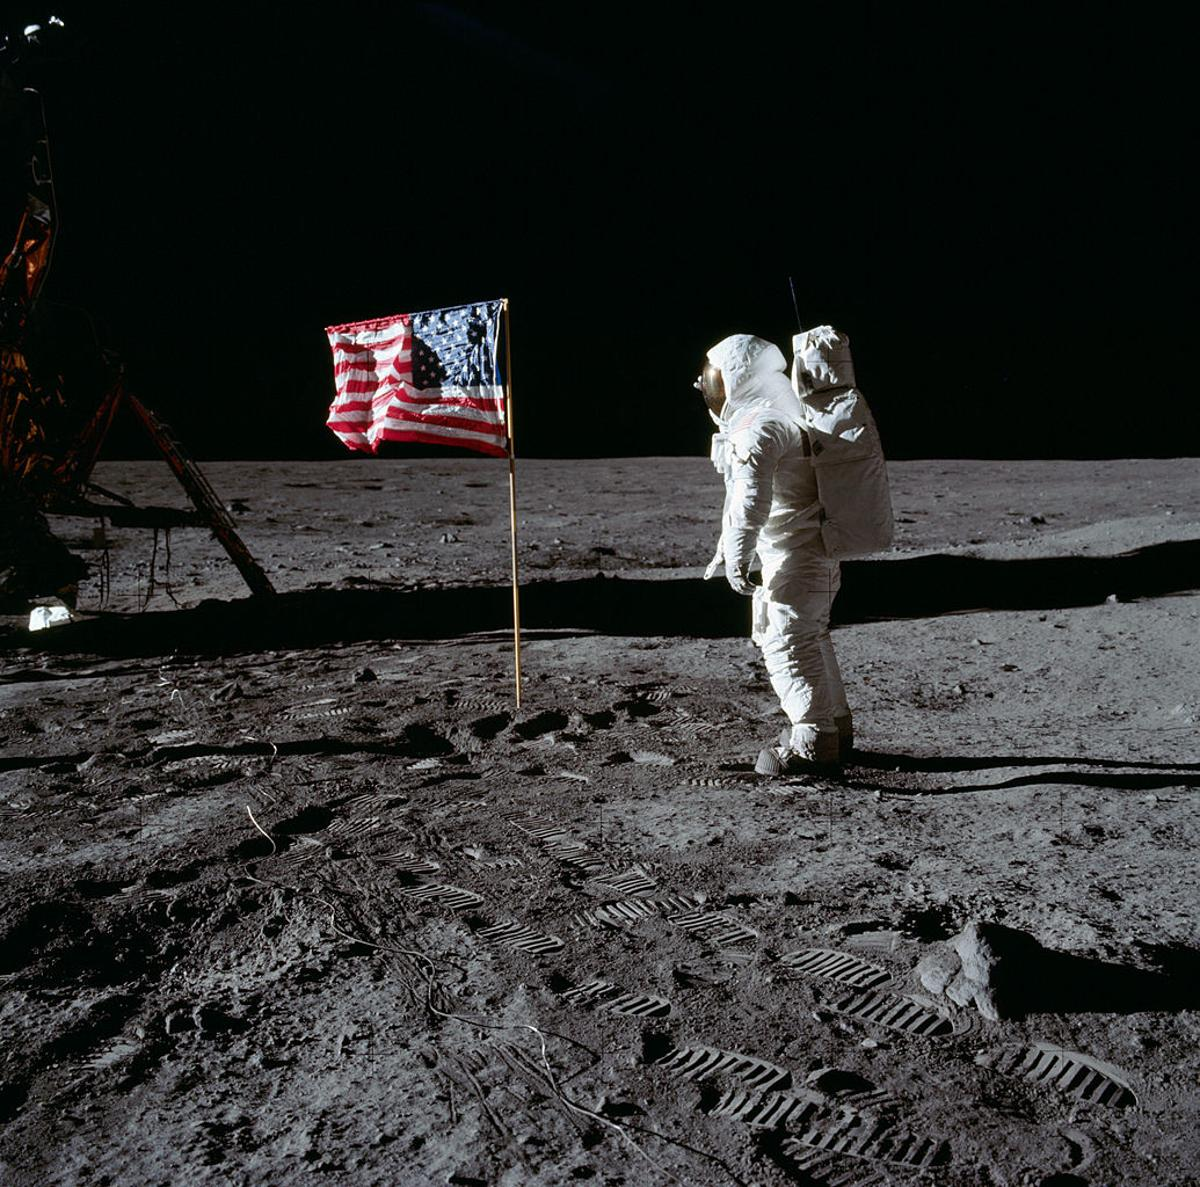 Buzz Aldrin planting a US flag on the Moon – for purely symbolic purposes of course